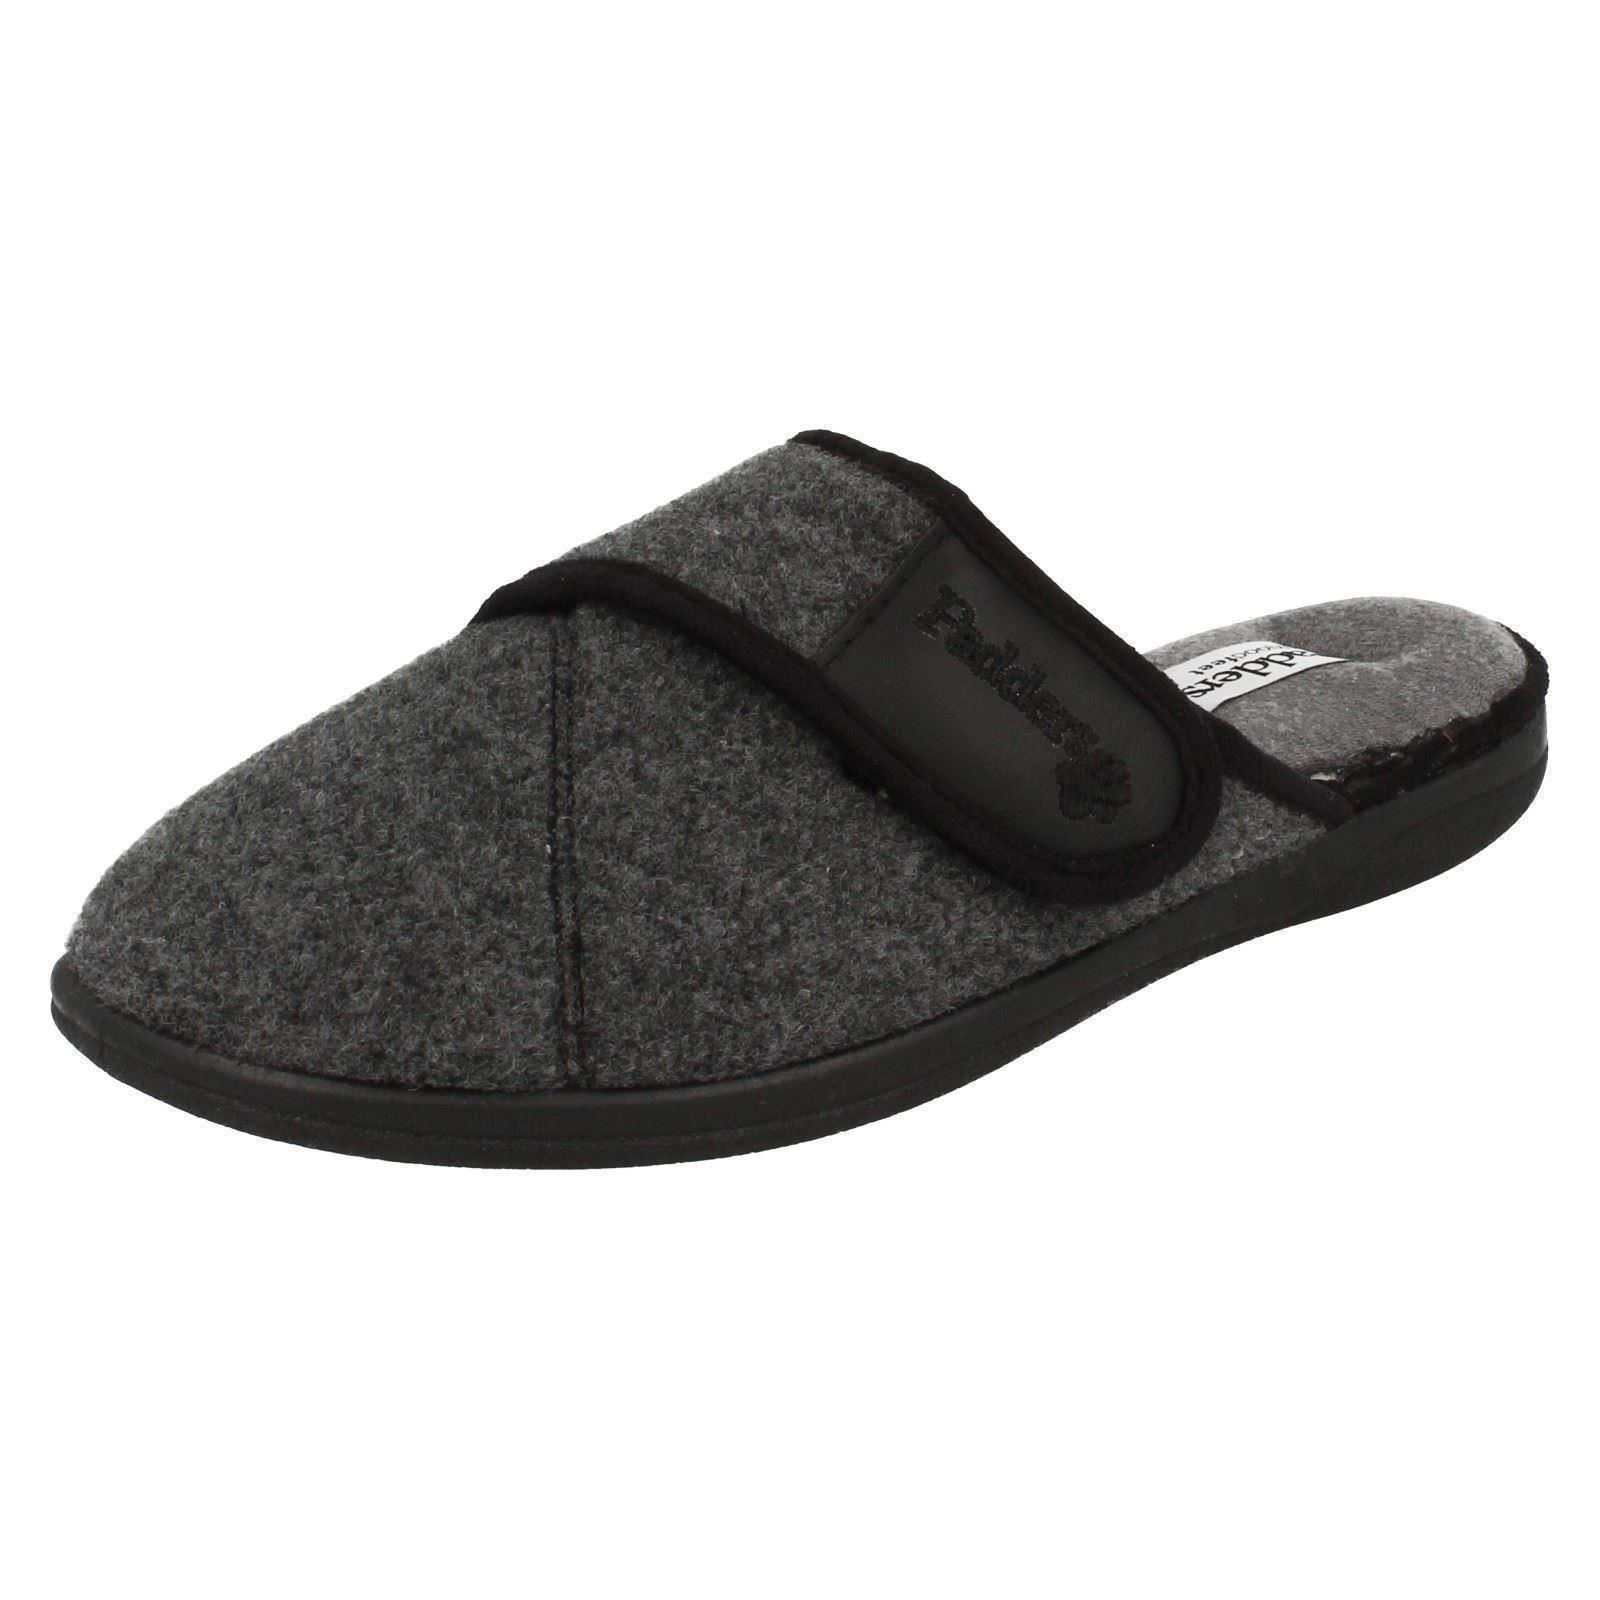 'Mens Padders' Rounded Toe Slip On Memory Foam Mule Slippers - Baxter